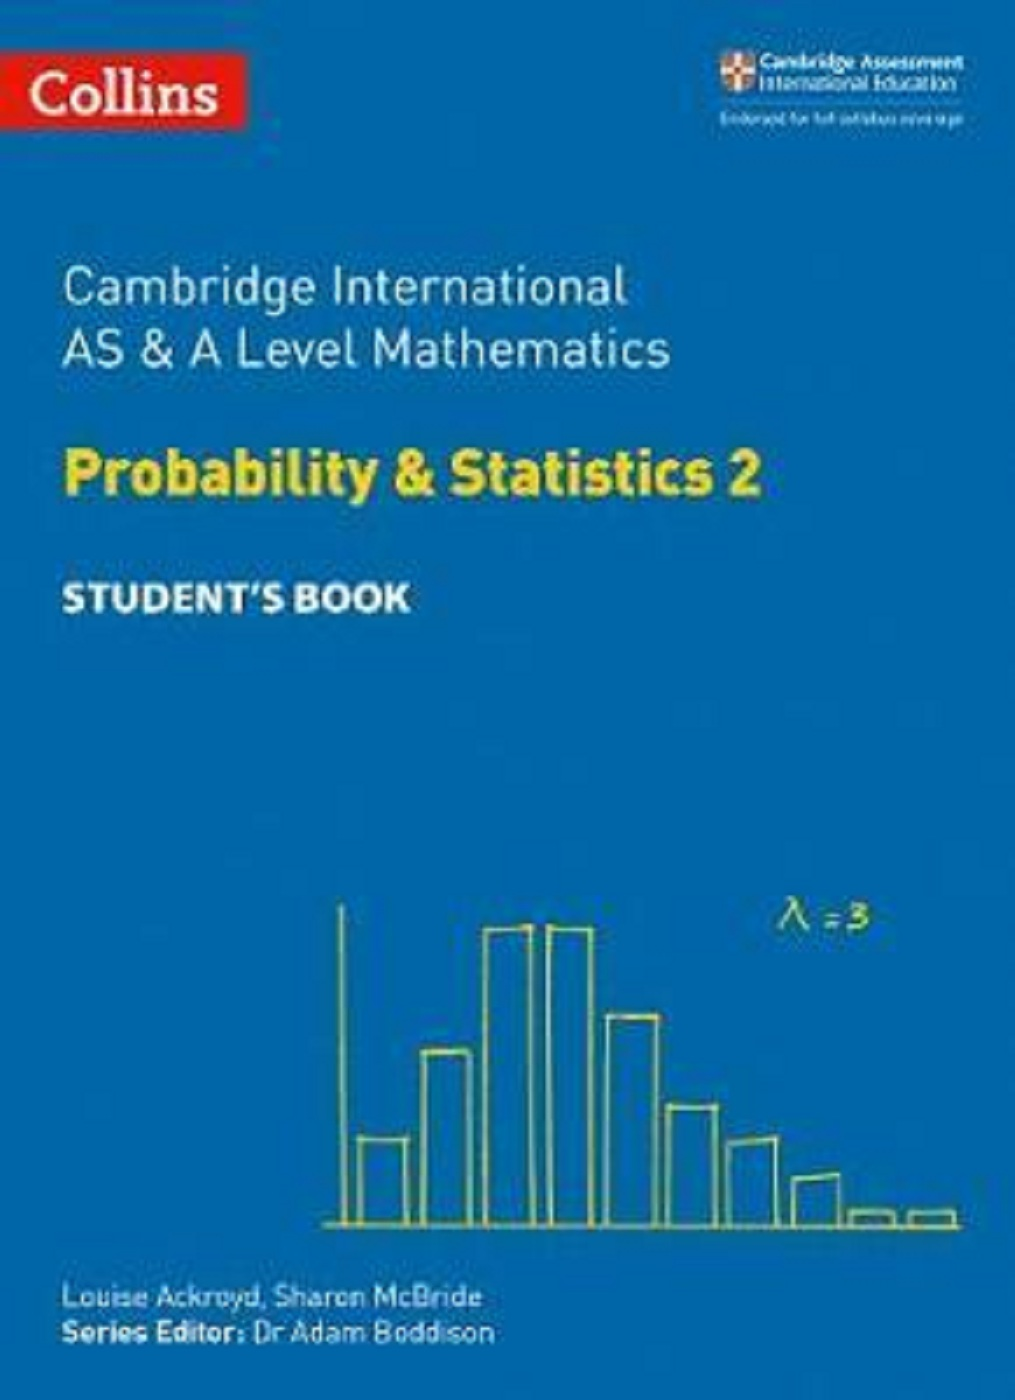 Collins Cambridge International AS & A Level Mathematics Probability and Statistics 2 Student's Book